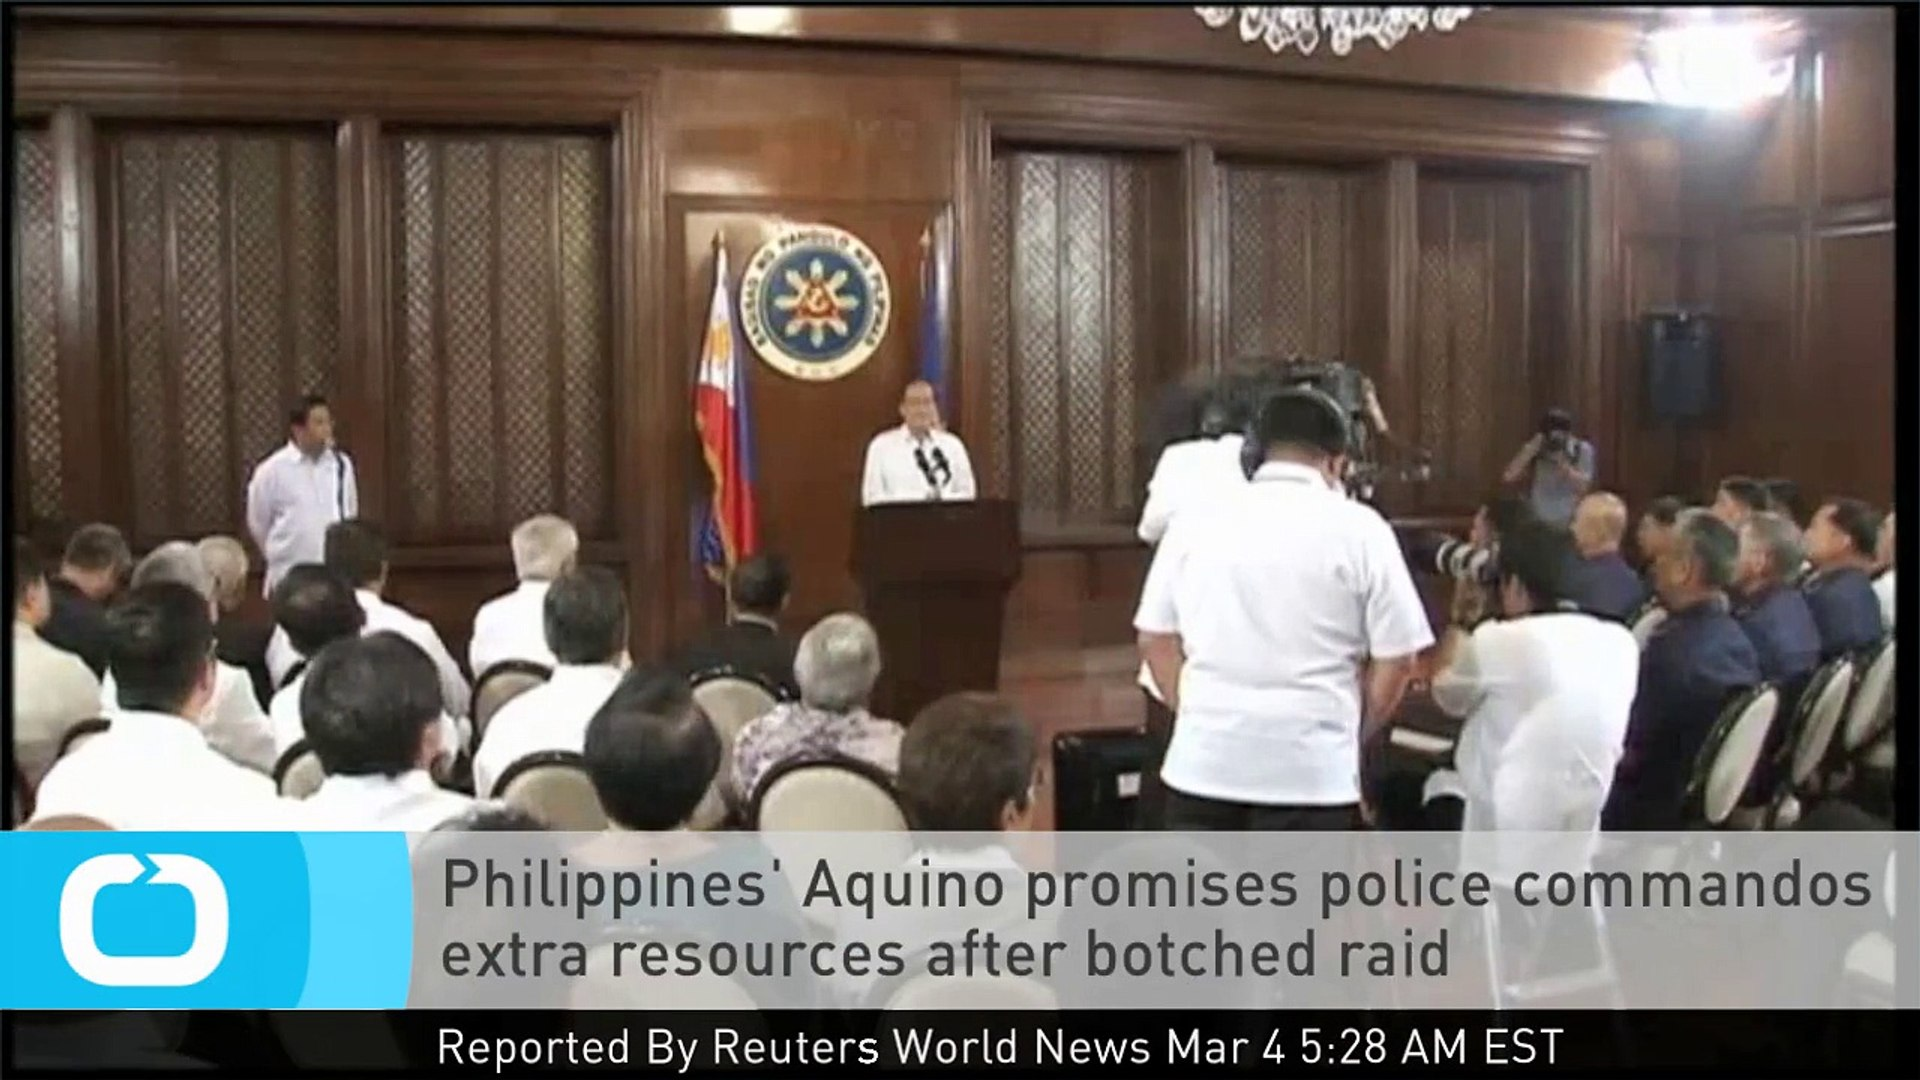 Philippines' Aquino Promises Police Commandos Extra Resources After Botched Raid